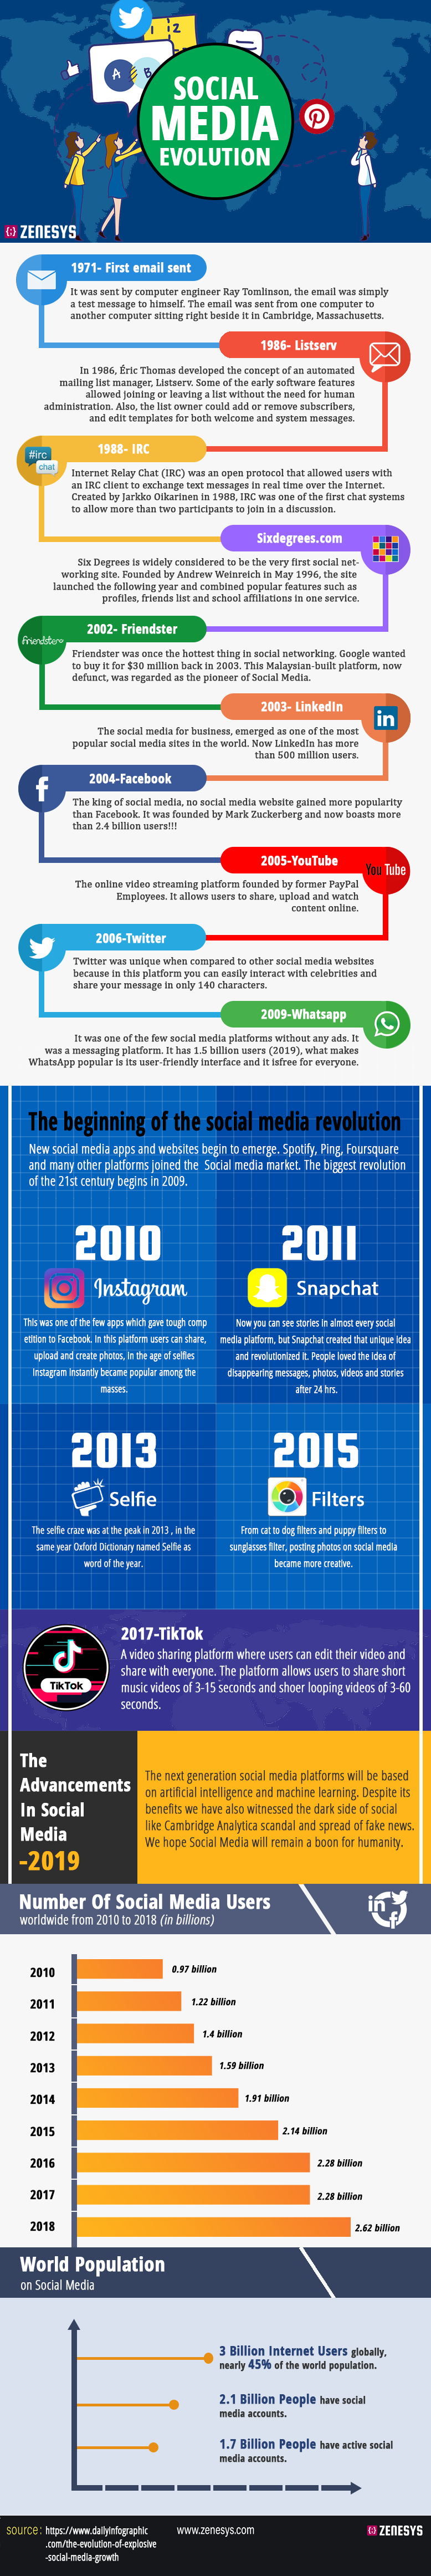 Social Media Evolution #infographic